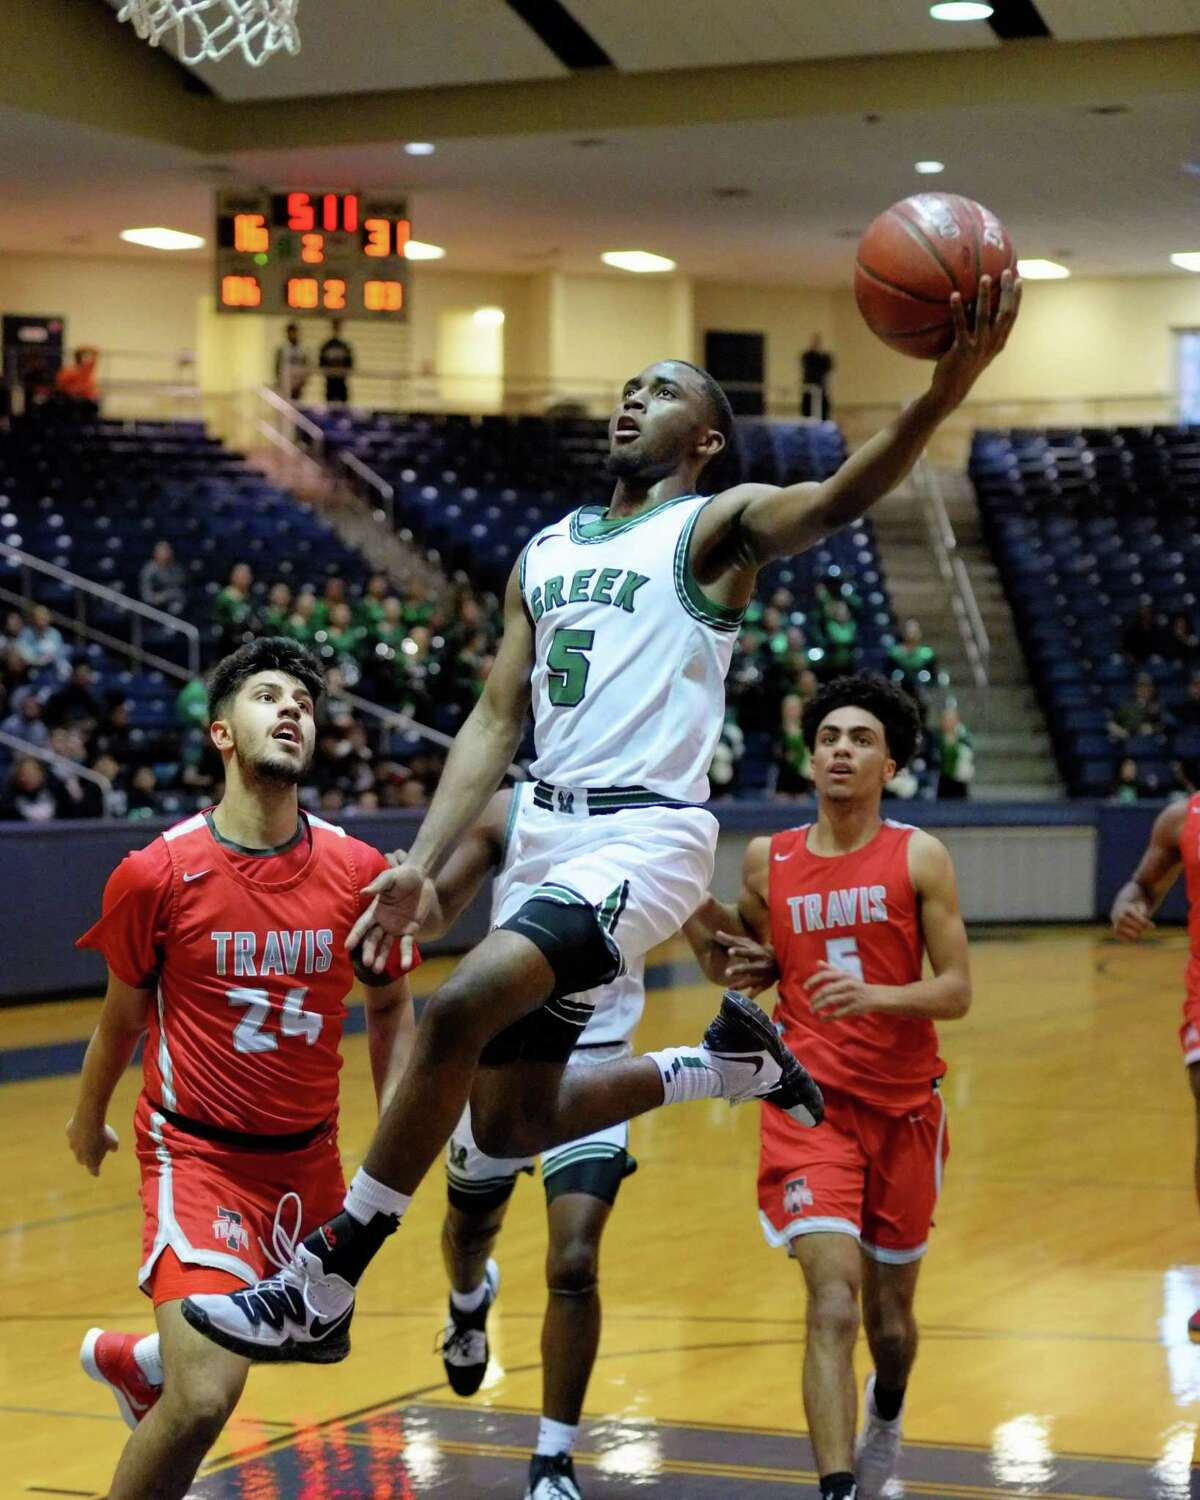 Jermon Washington (5) of Mayde Creek drives to the basket for a lay-up during the second quarter of a Boys 6A Region III Bi-District play-off game between the Mayde Creek Rams and the Travis Tigers on Tuesday, February 25, 2020 at Coleman Coliseum, Houston, TX.